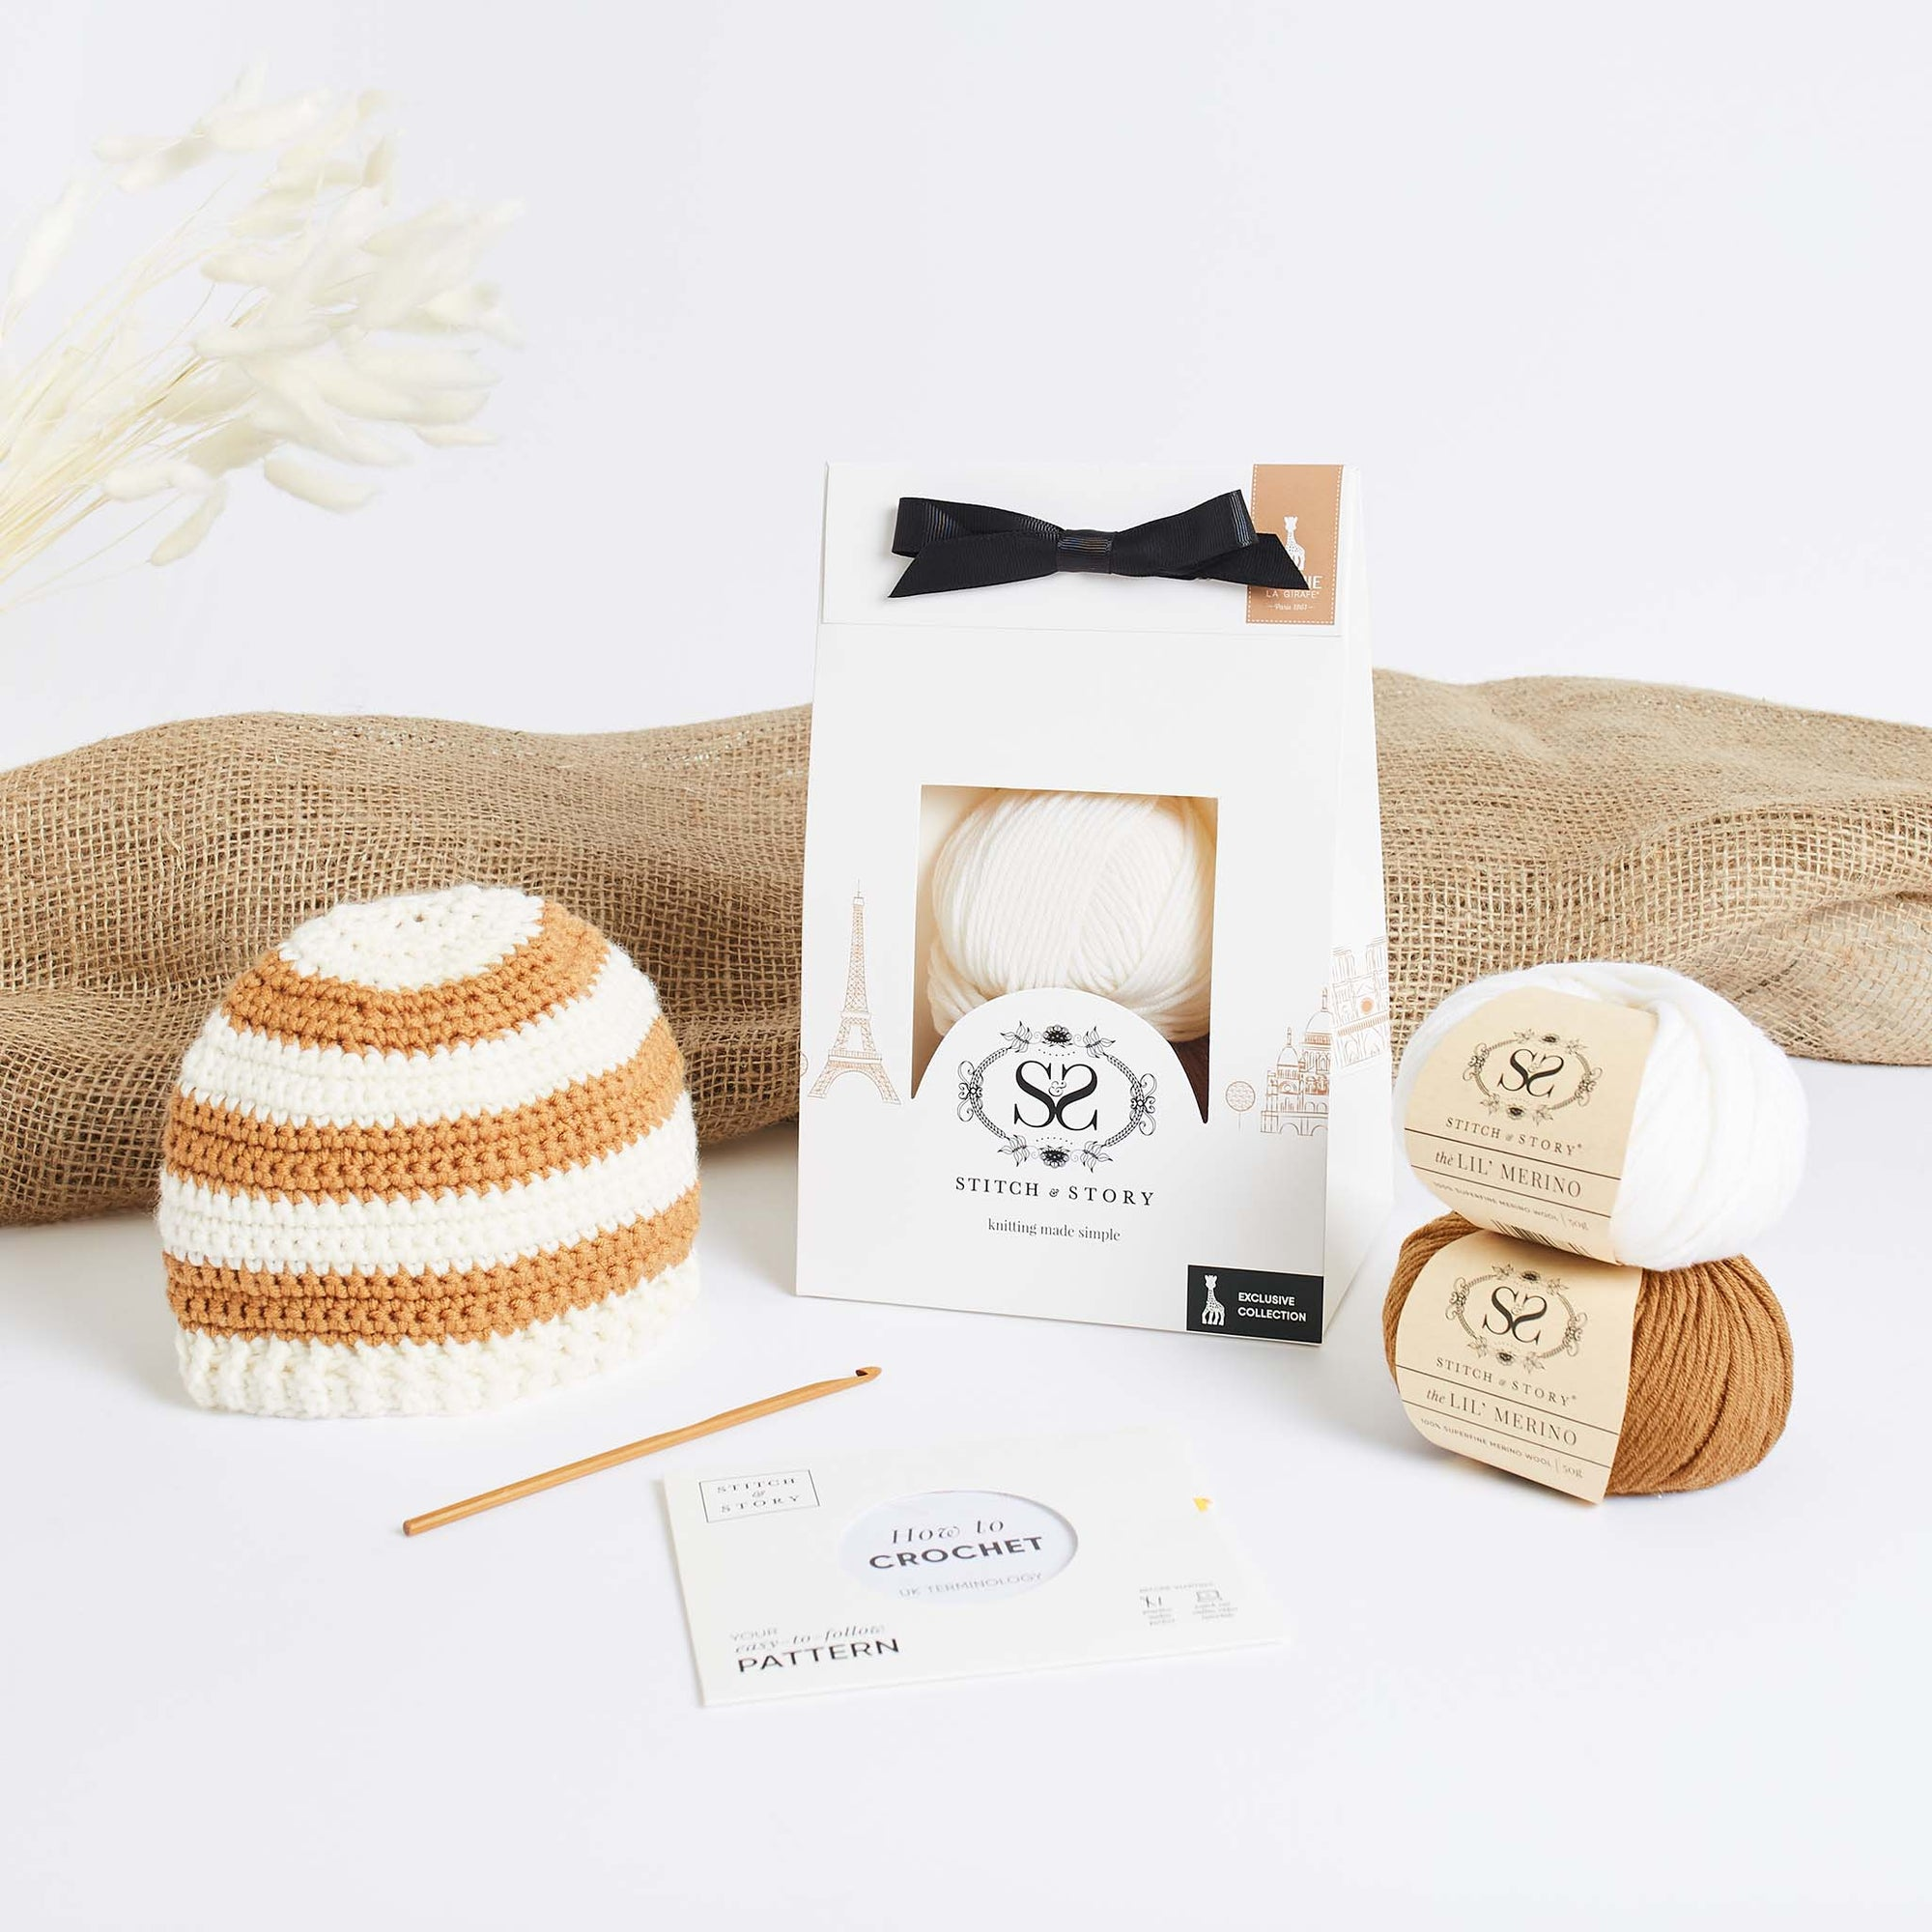 Sophie la girafe: Sophie Striped Crochet Baby Hat Crochet Kit